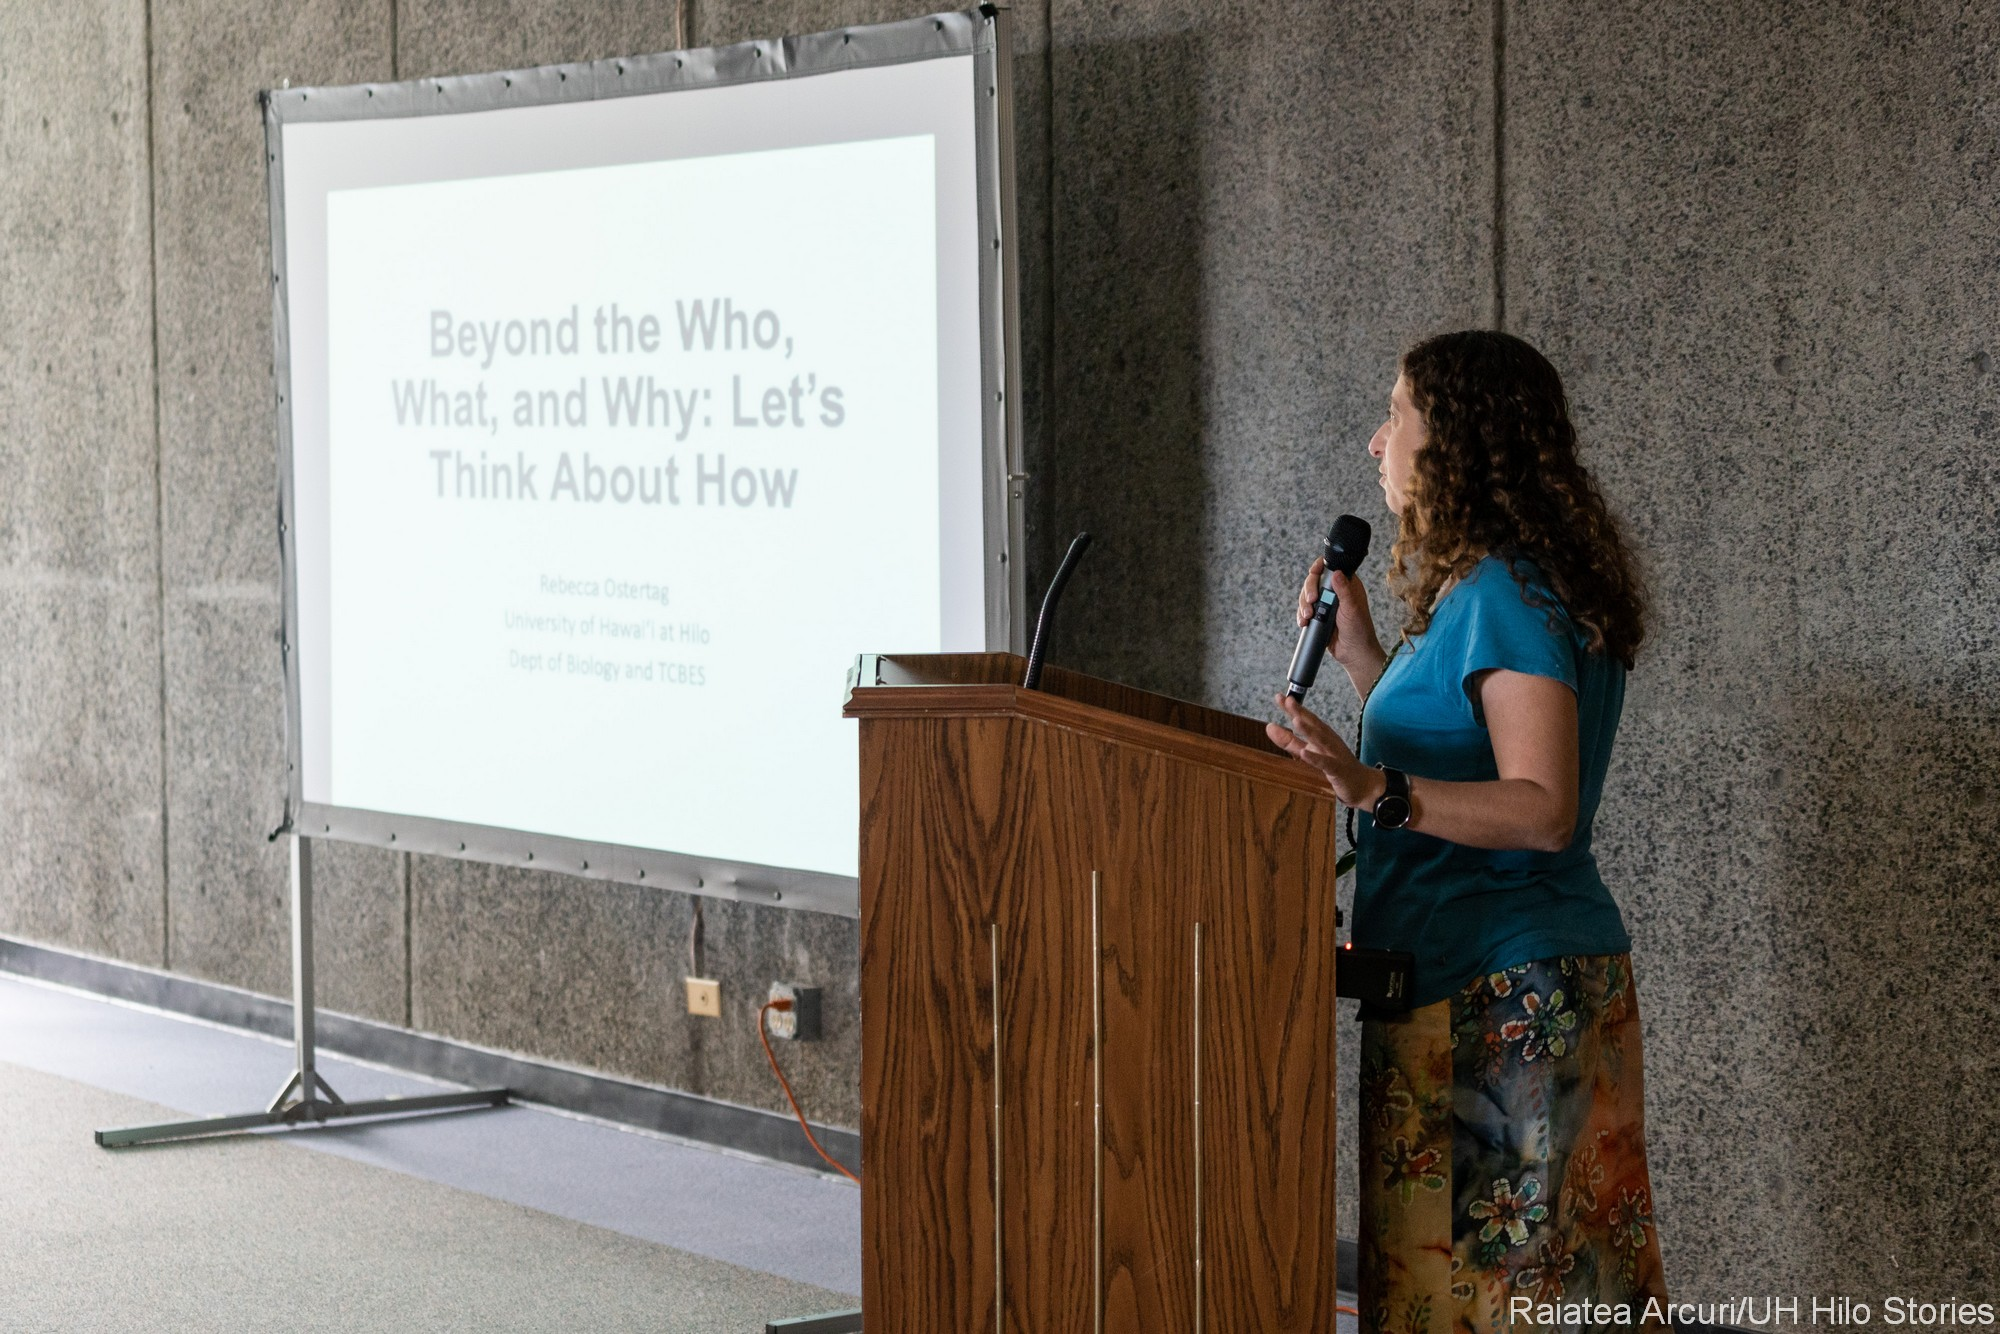 """Becky Ostertag gives remarks., on screen topic:""""Beyond the Who, What, Why: Let's Think About How"""""""